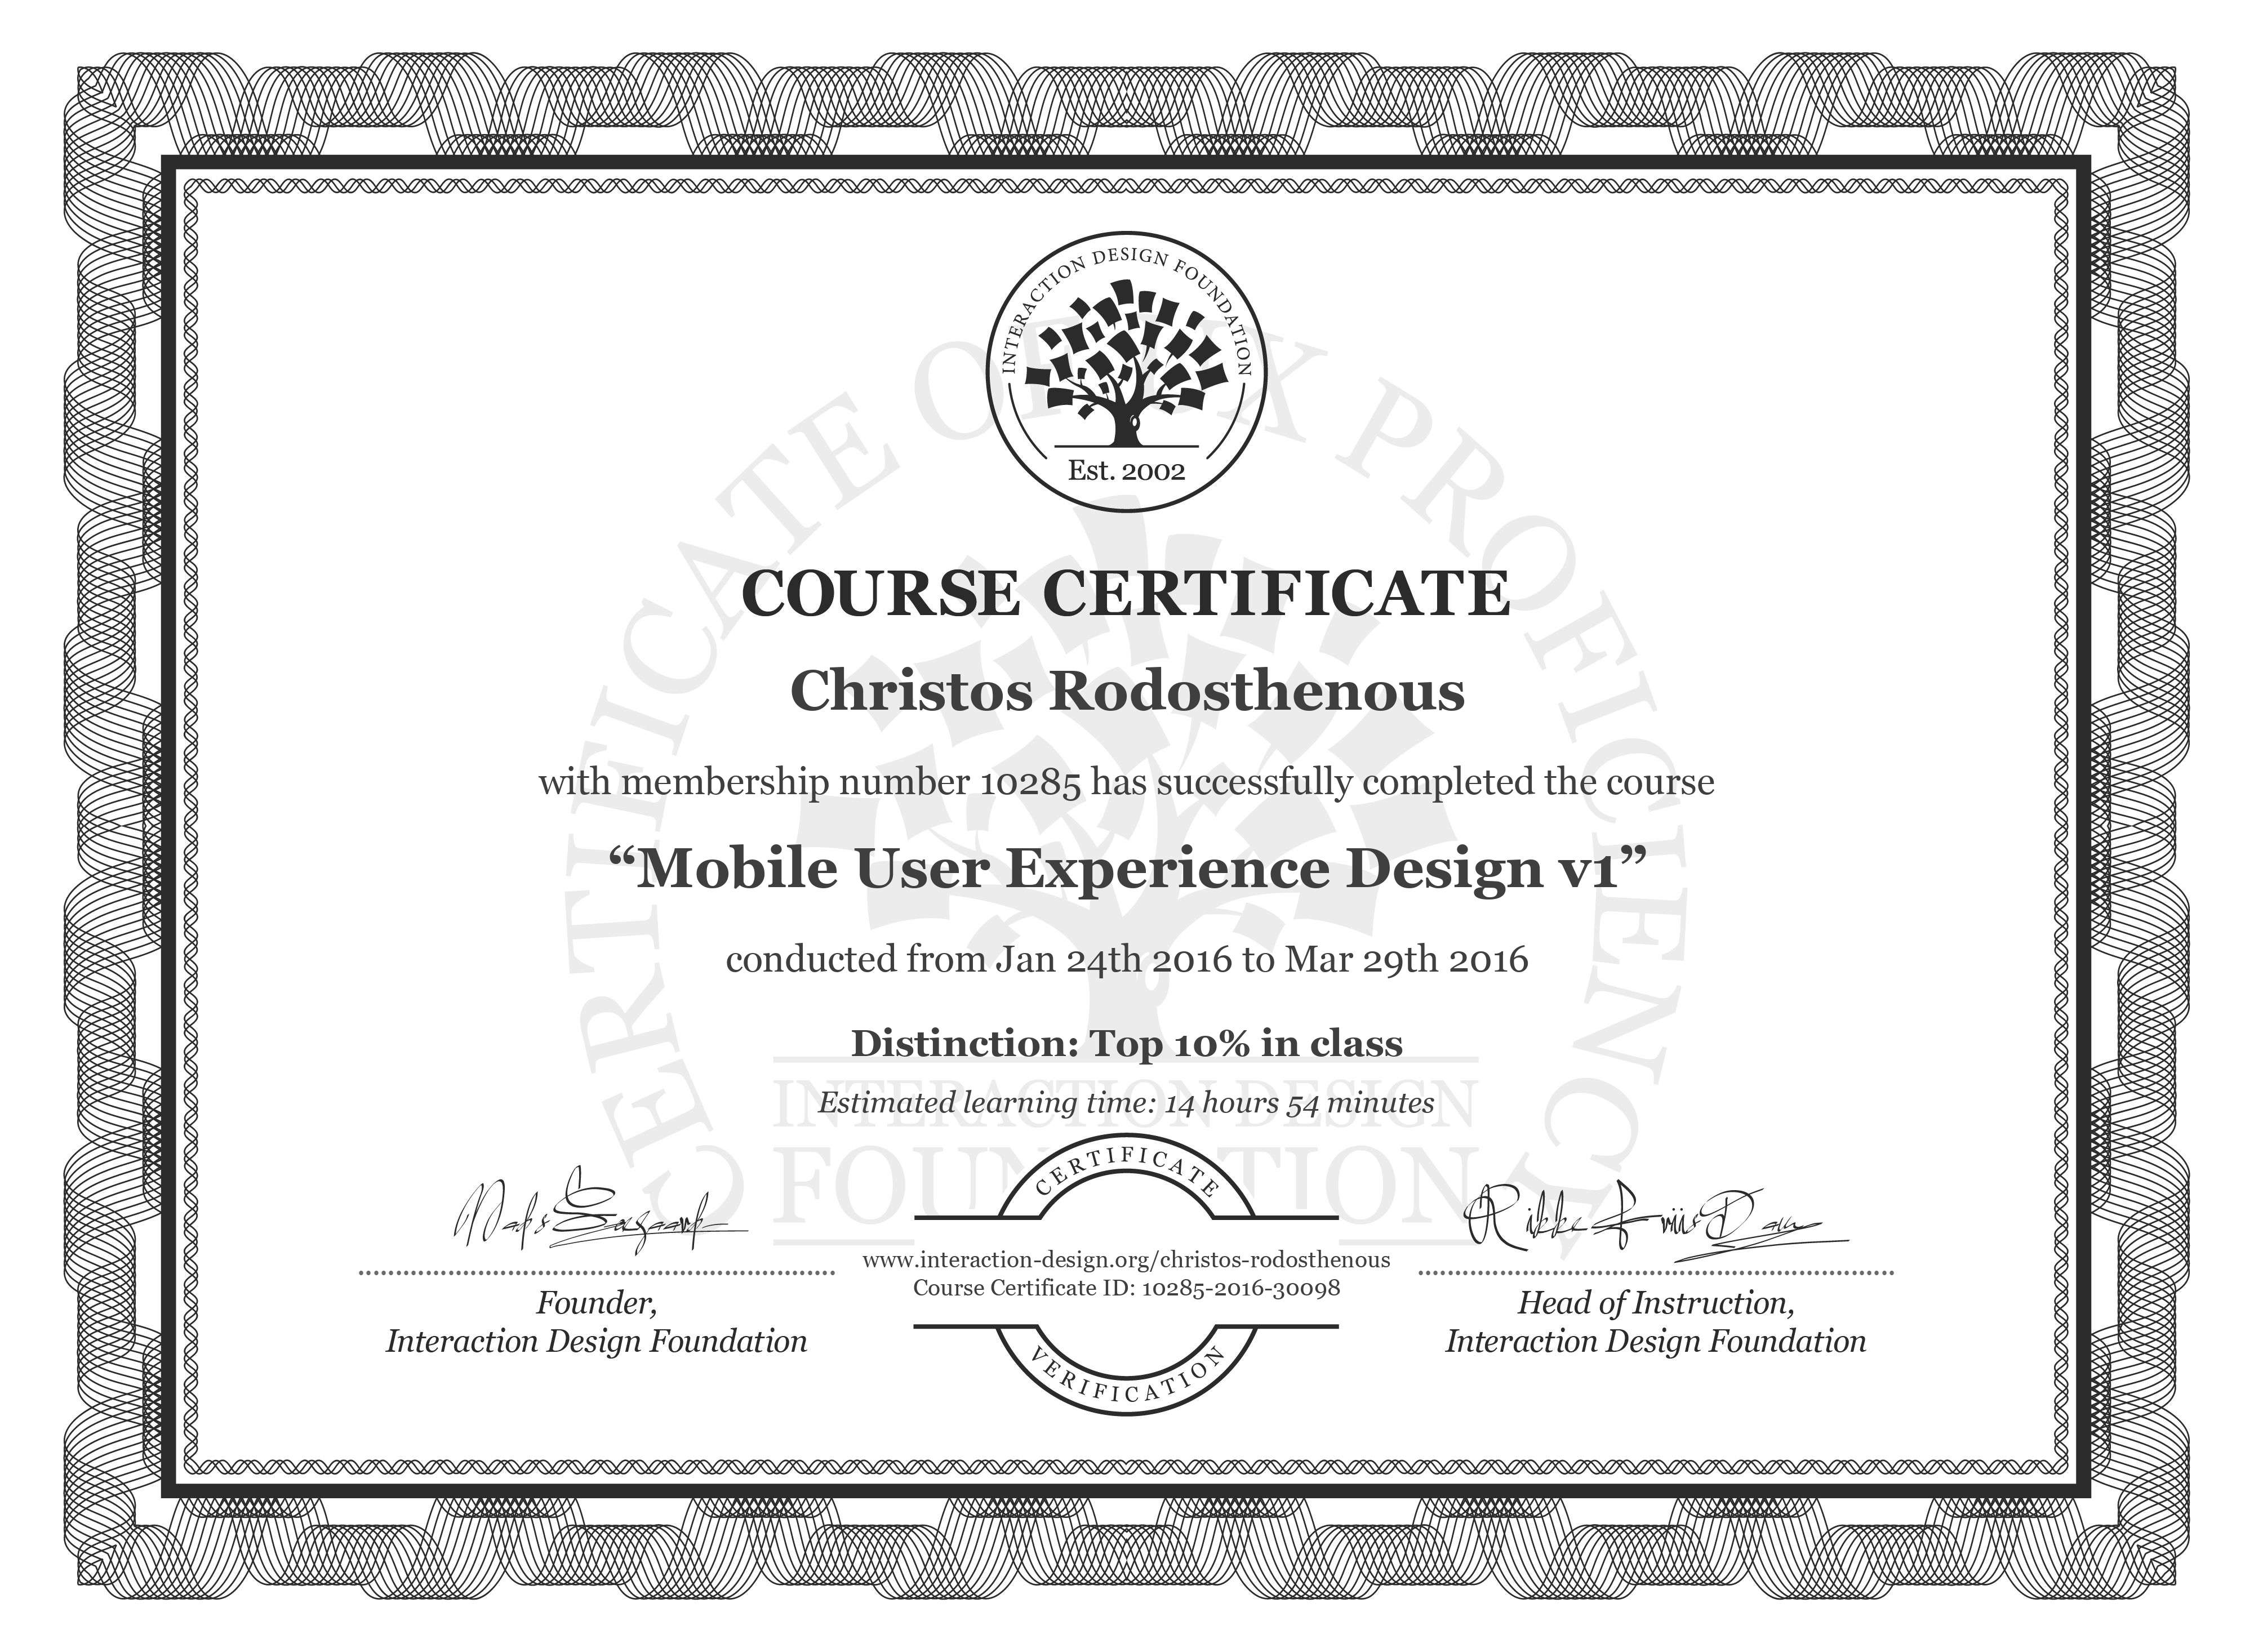 Christos Rodosthenous's Course Certificate: Mobile User Experience Design